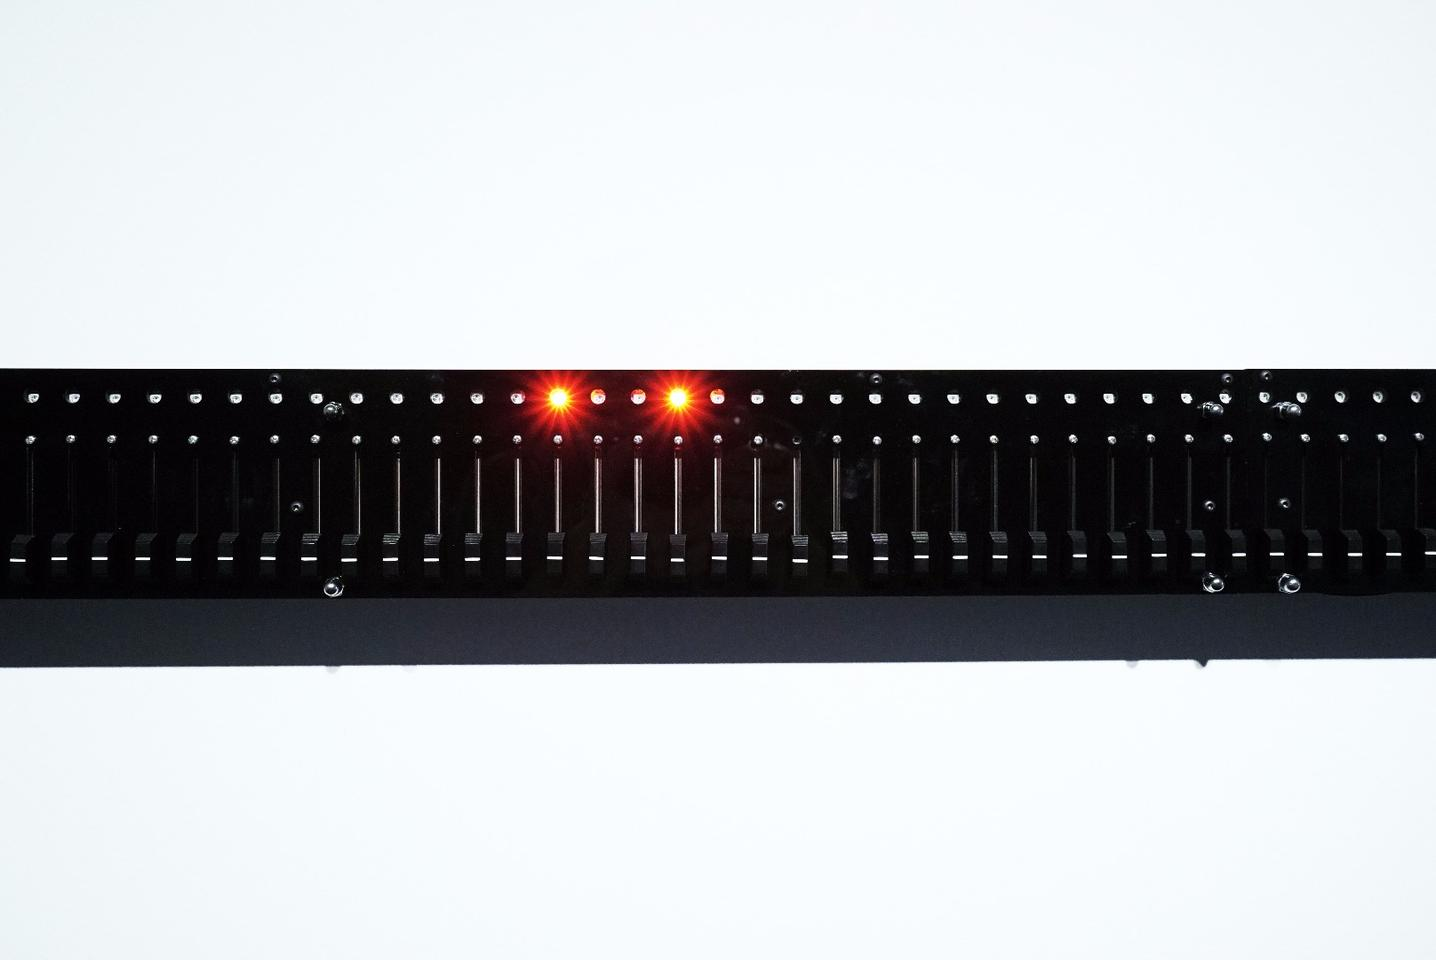 The Ivy 240 step sequencer has an Arduino Mega brain connected toanalog multiplexers